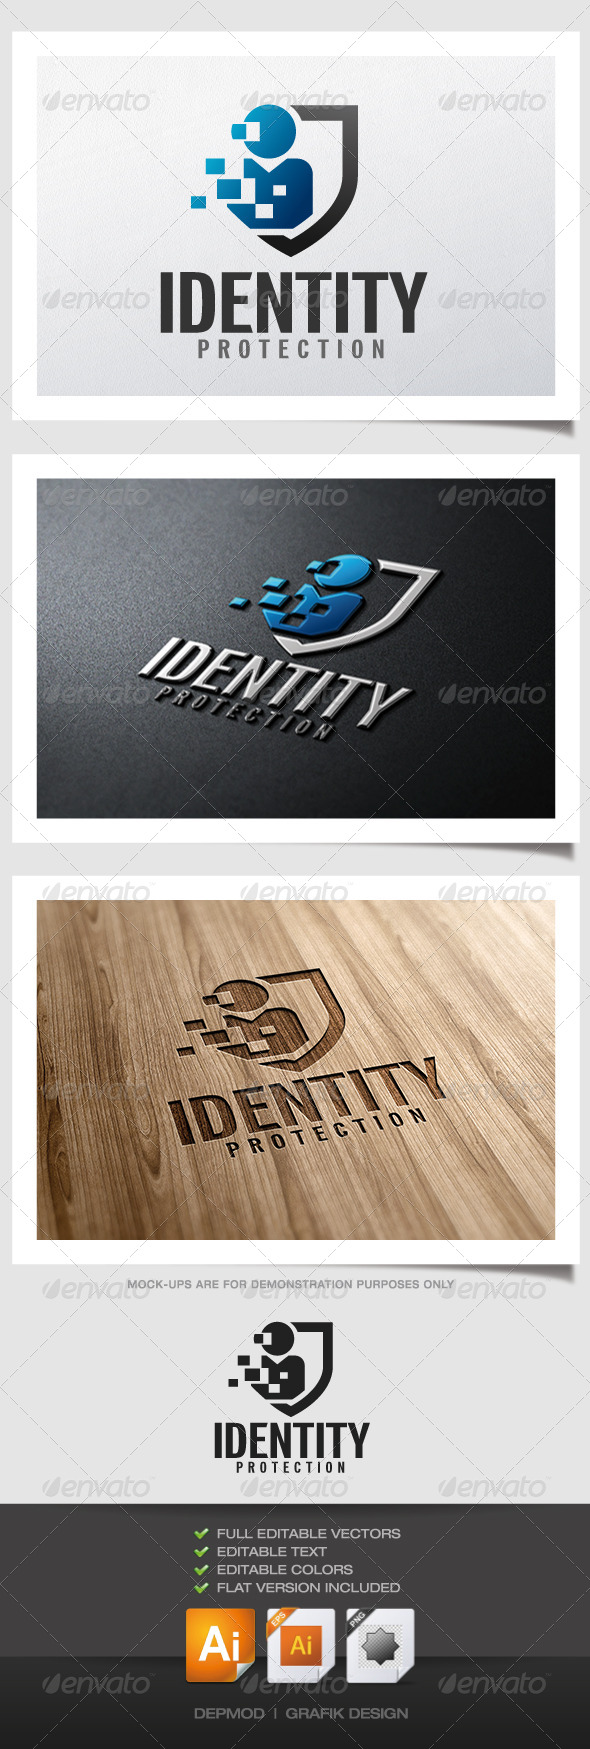 GraphicRiver Identity Protection Logo 5008750